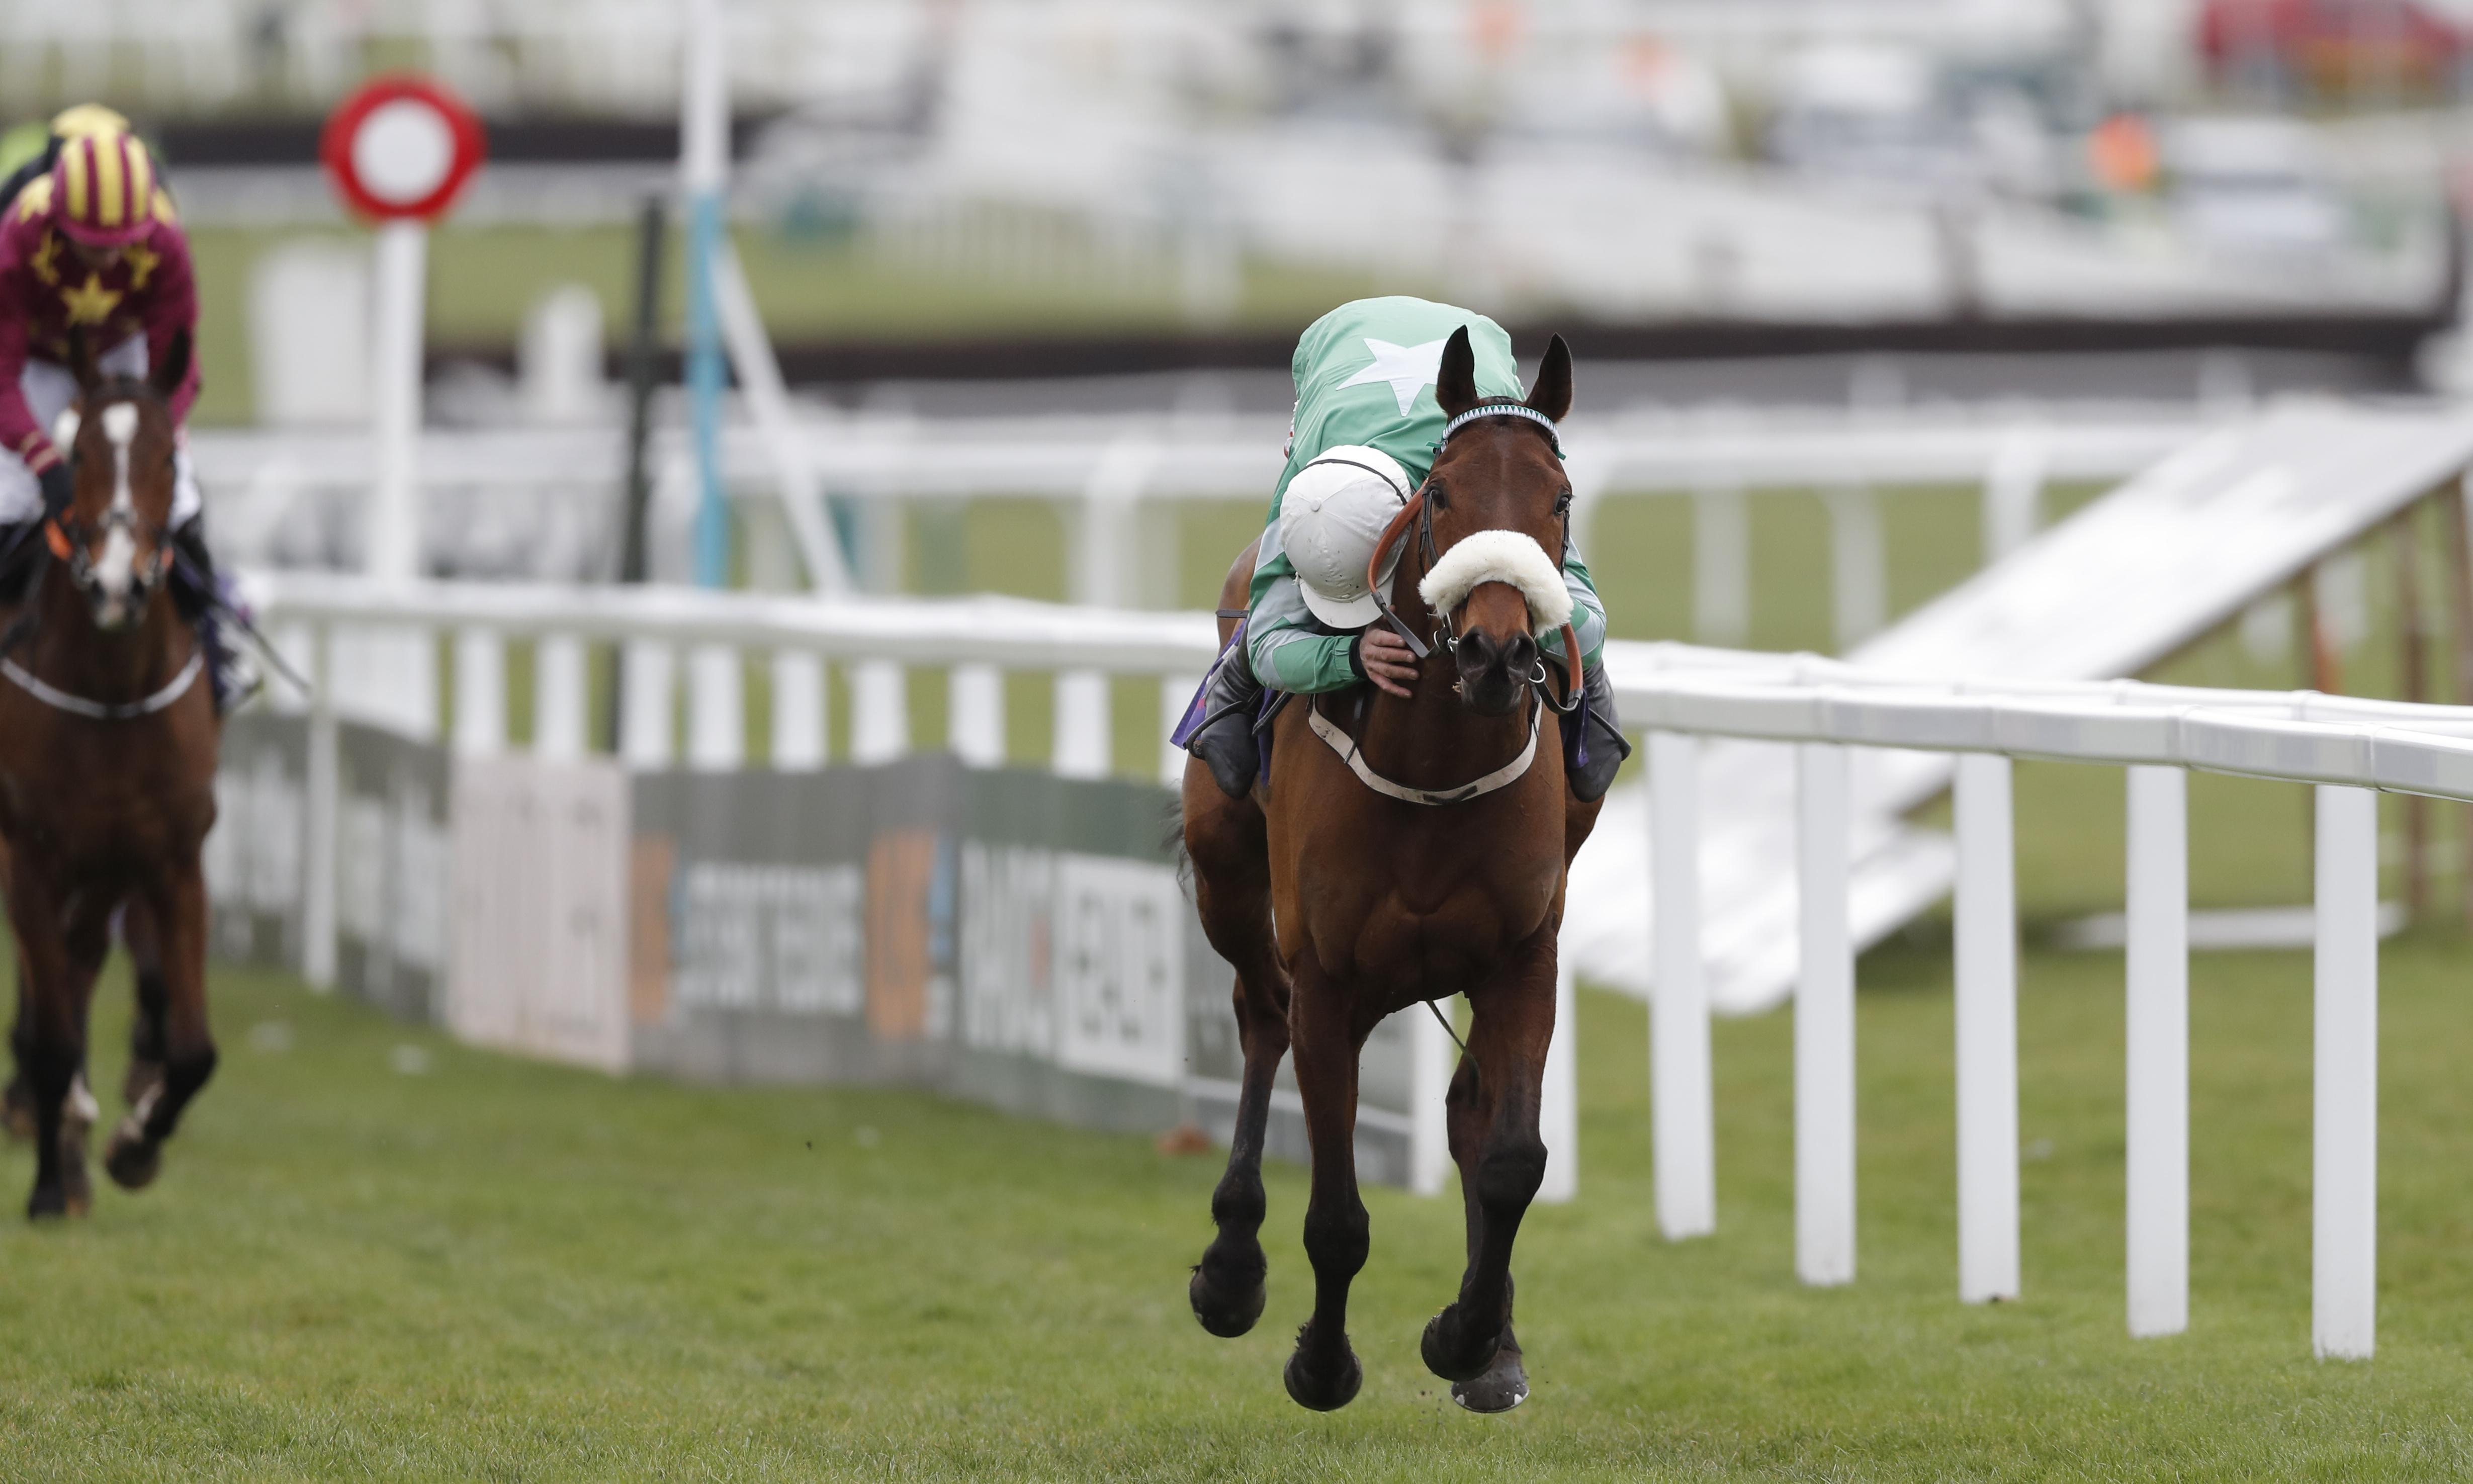 Presenting Percy may run this weekend despite owner's caution